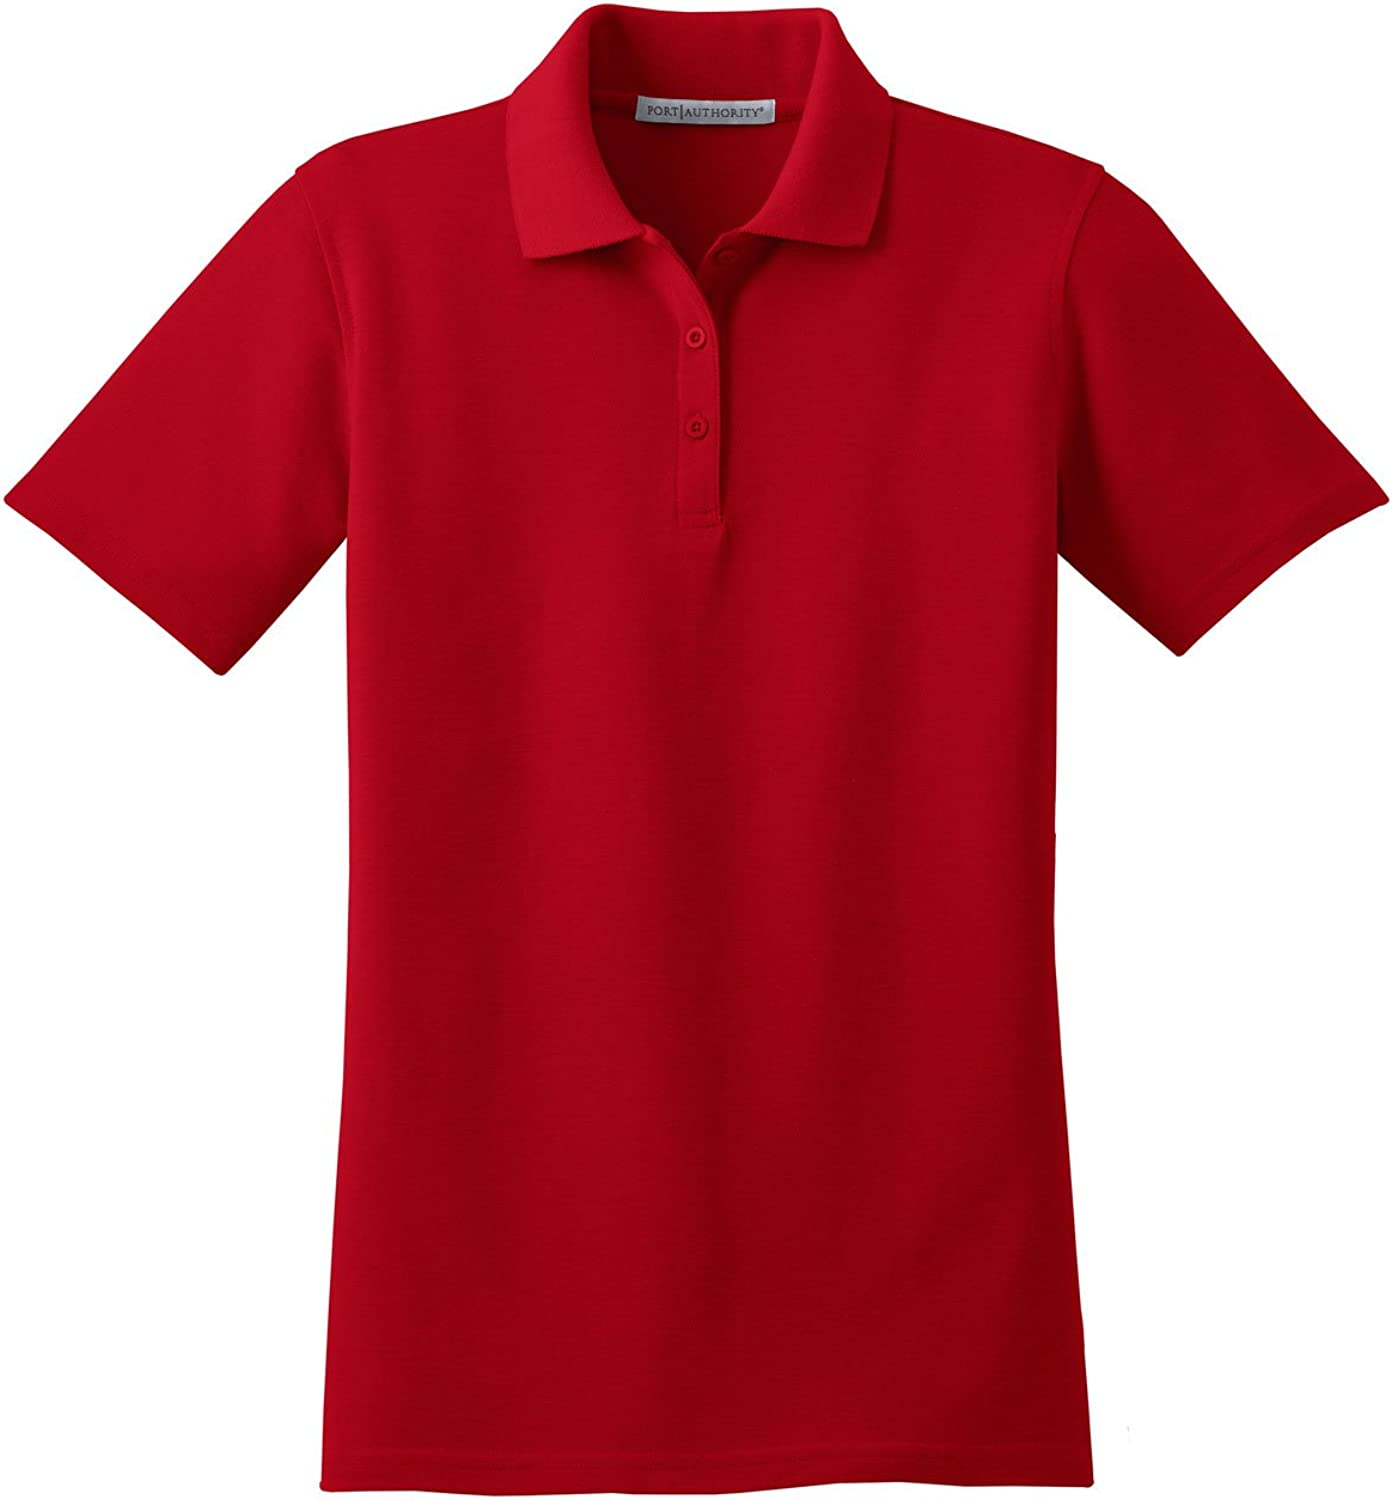 Port Authority Ladies Stain-Resistant Sport Shirt - Red L510 4XL